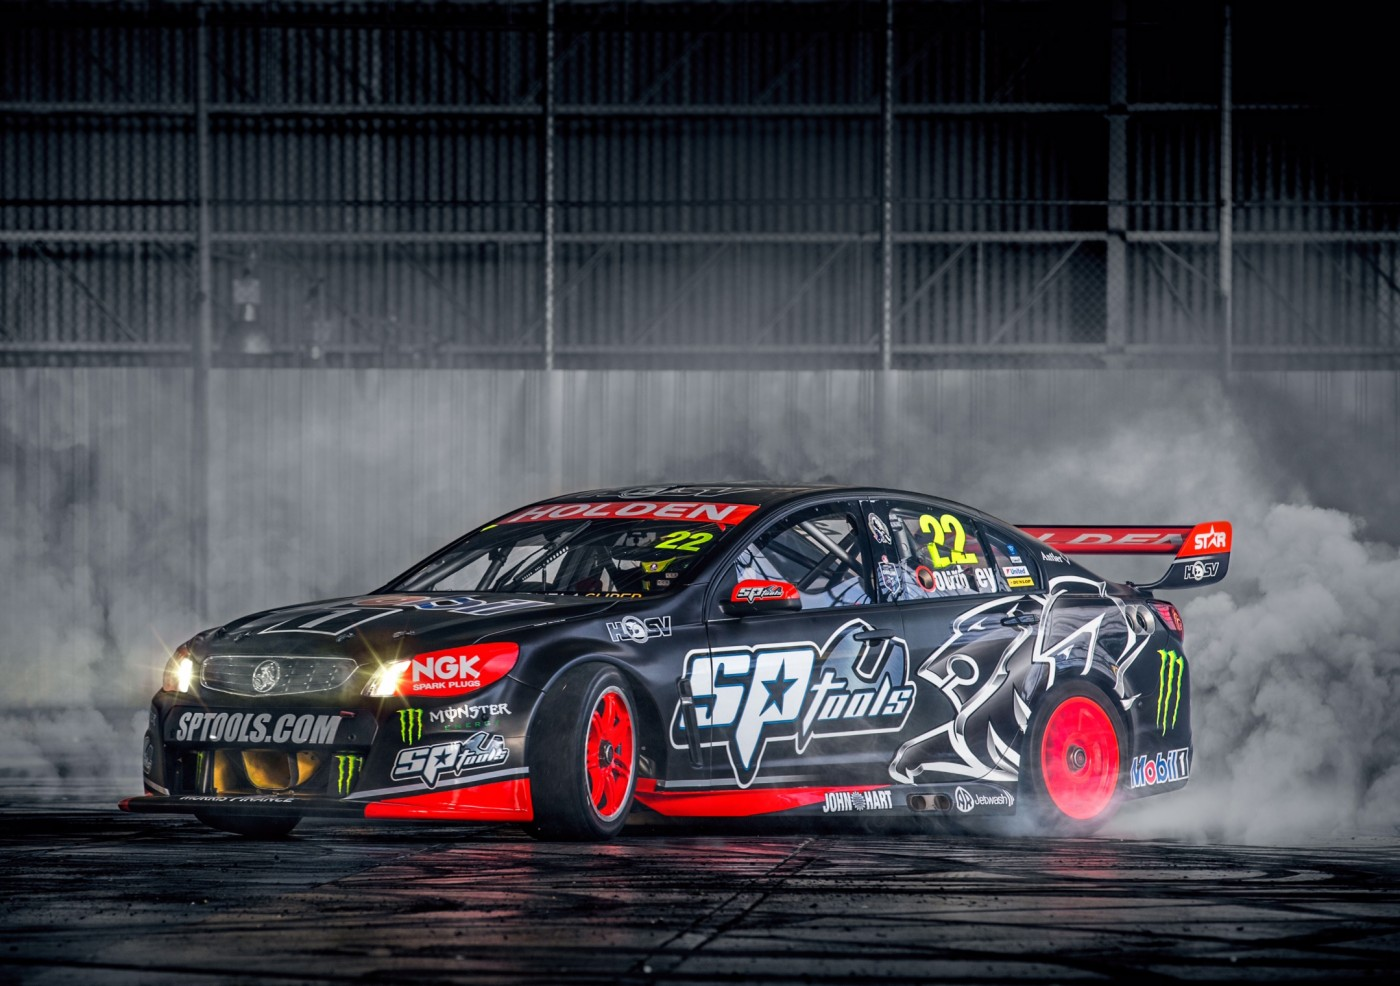 Monster Energy partners with HRT for 2015 V8 Supercars 1400x986